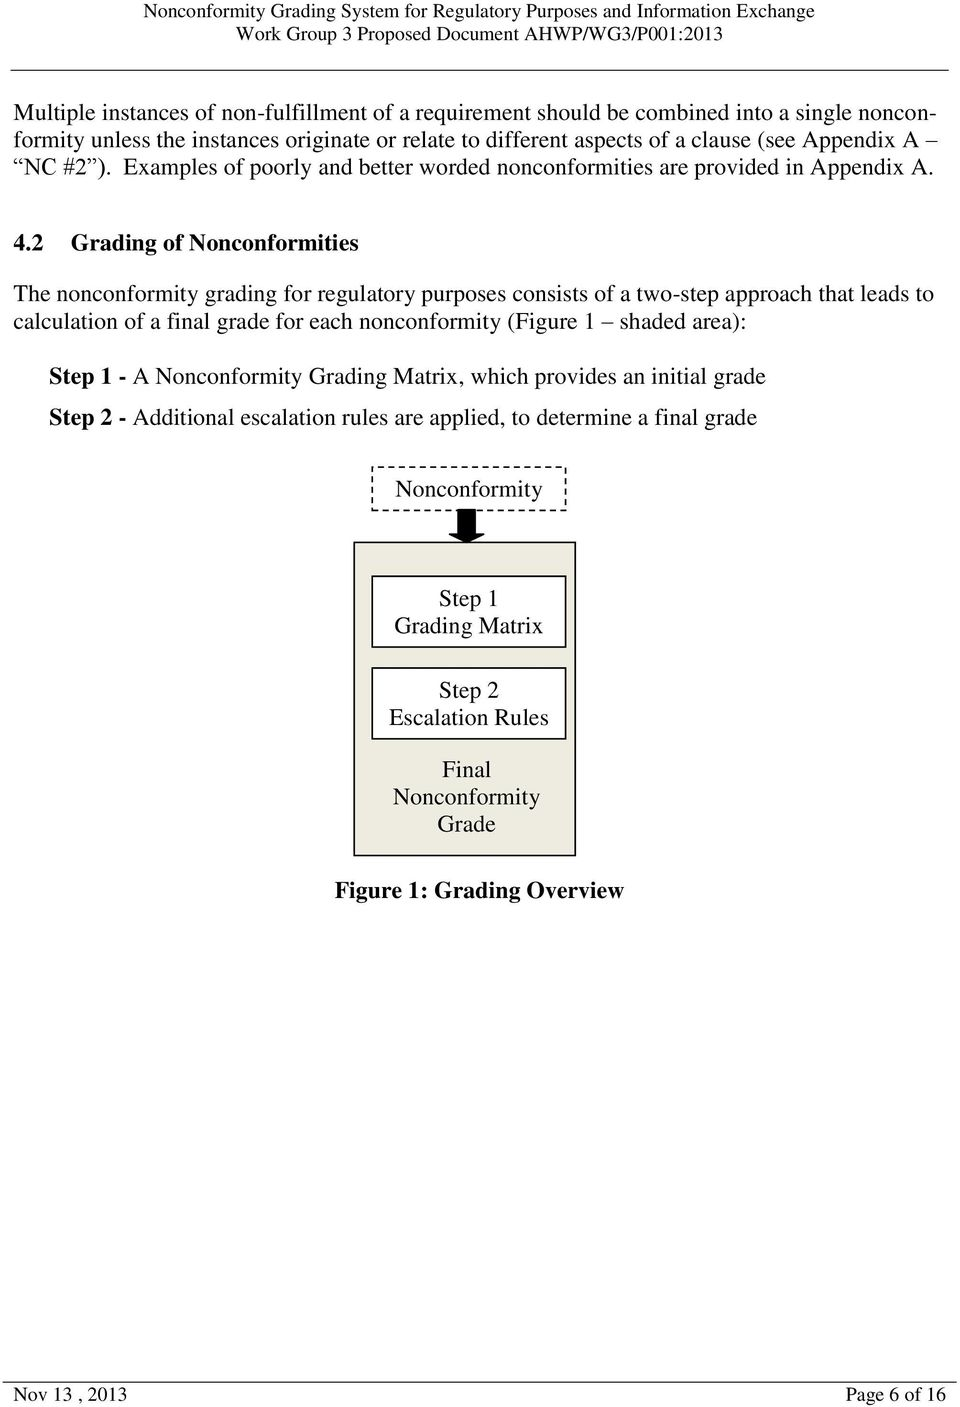 2 Grading of Nonconformities The nonconformity grading for regulatory purposes consists of a two-step approach that leads to calculation of a final grade for each nonconformity (Figure 1